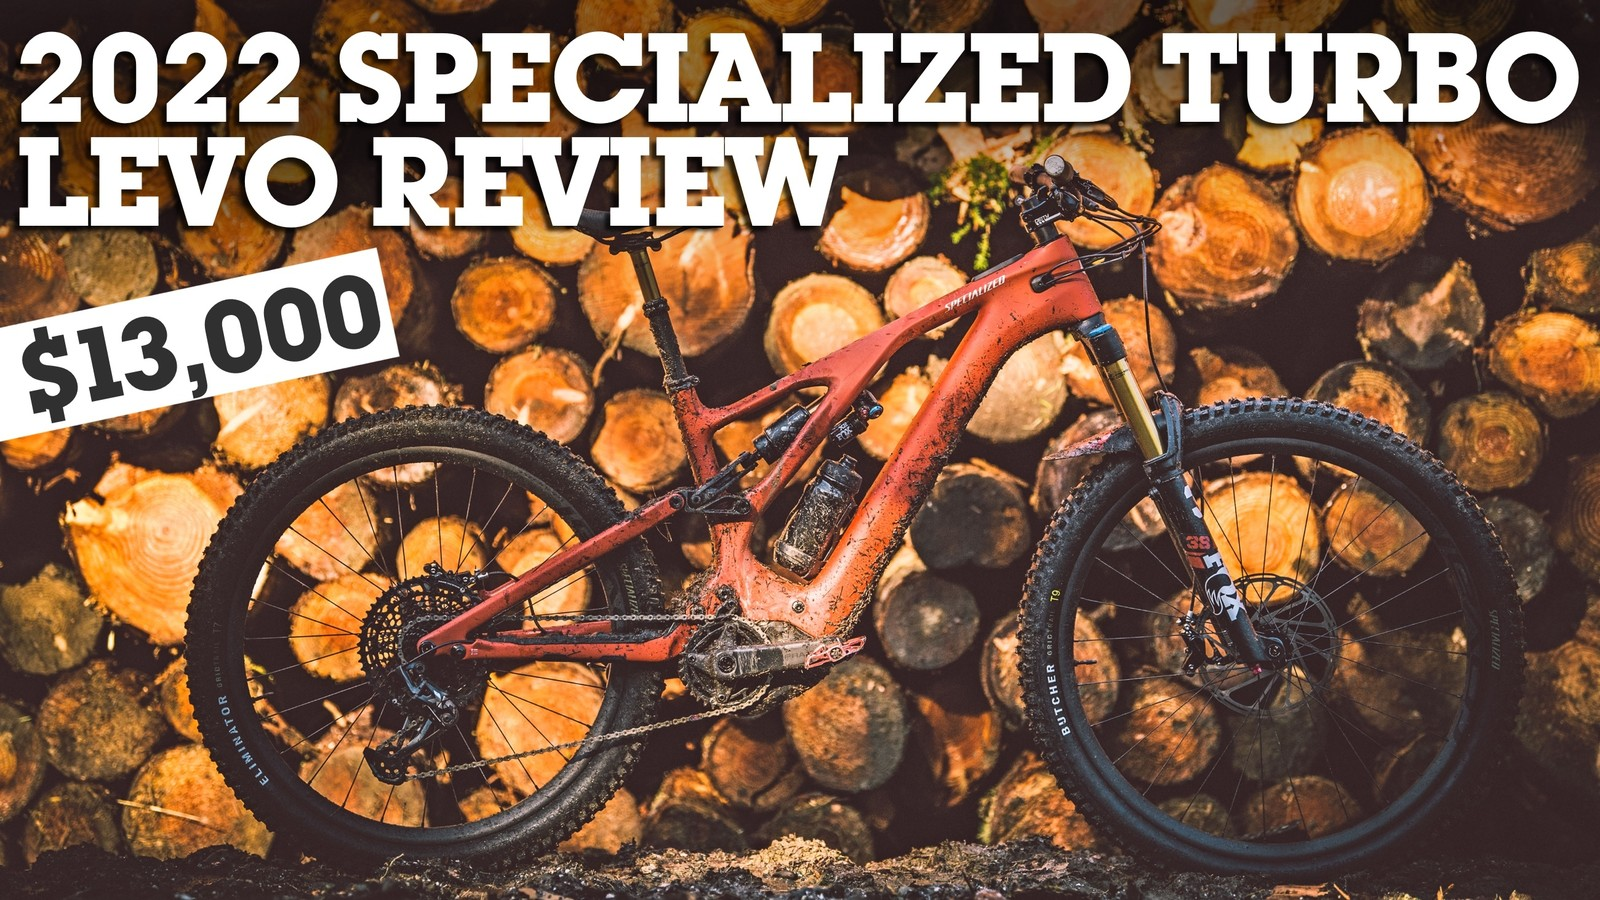 Review - 2022 Specialized Turbo Levo Pro eMTB